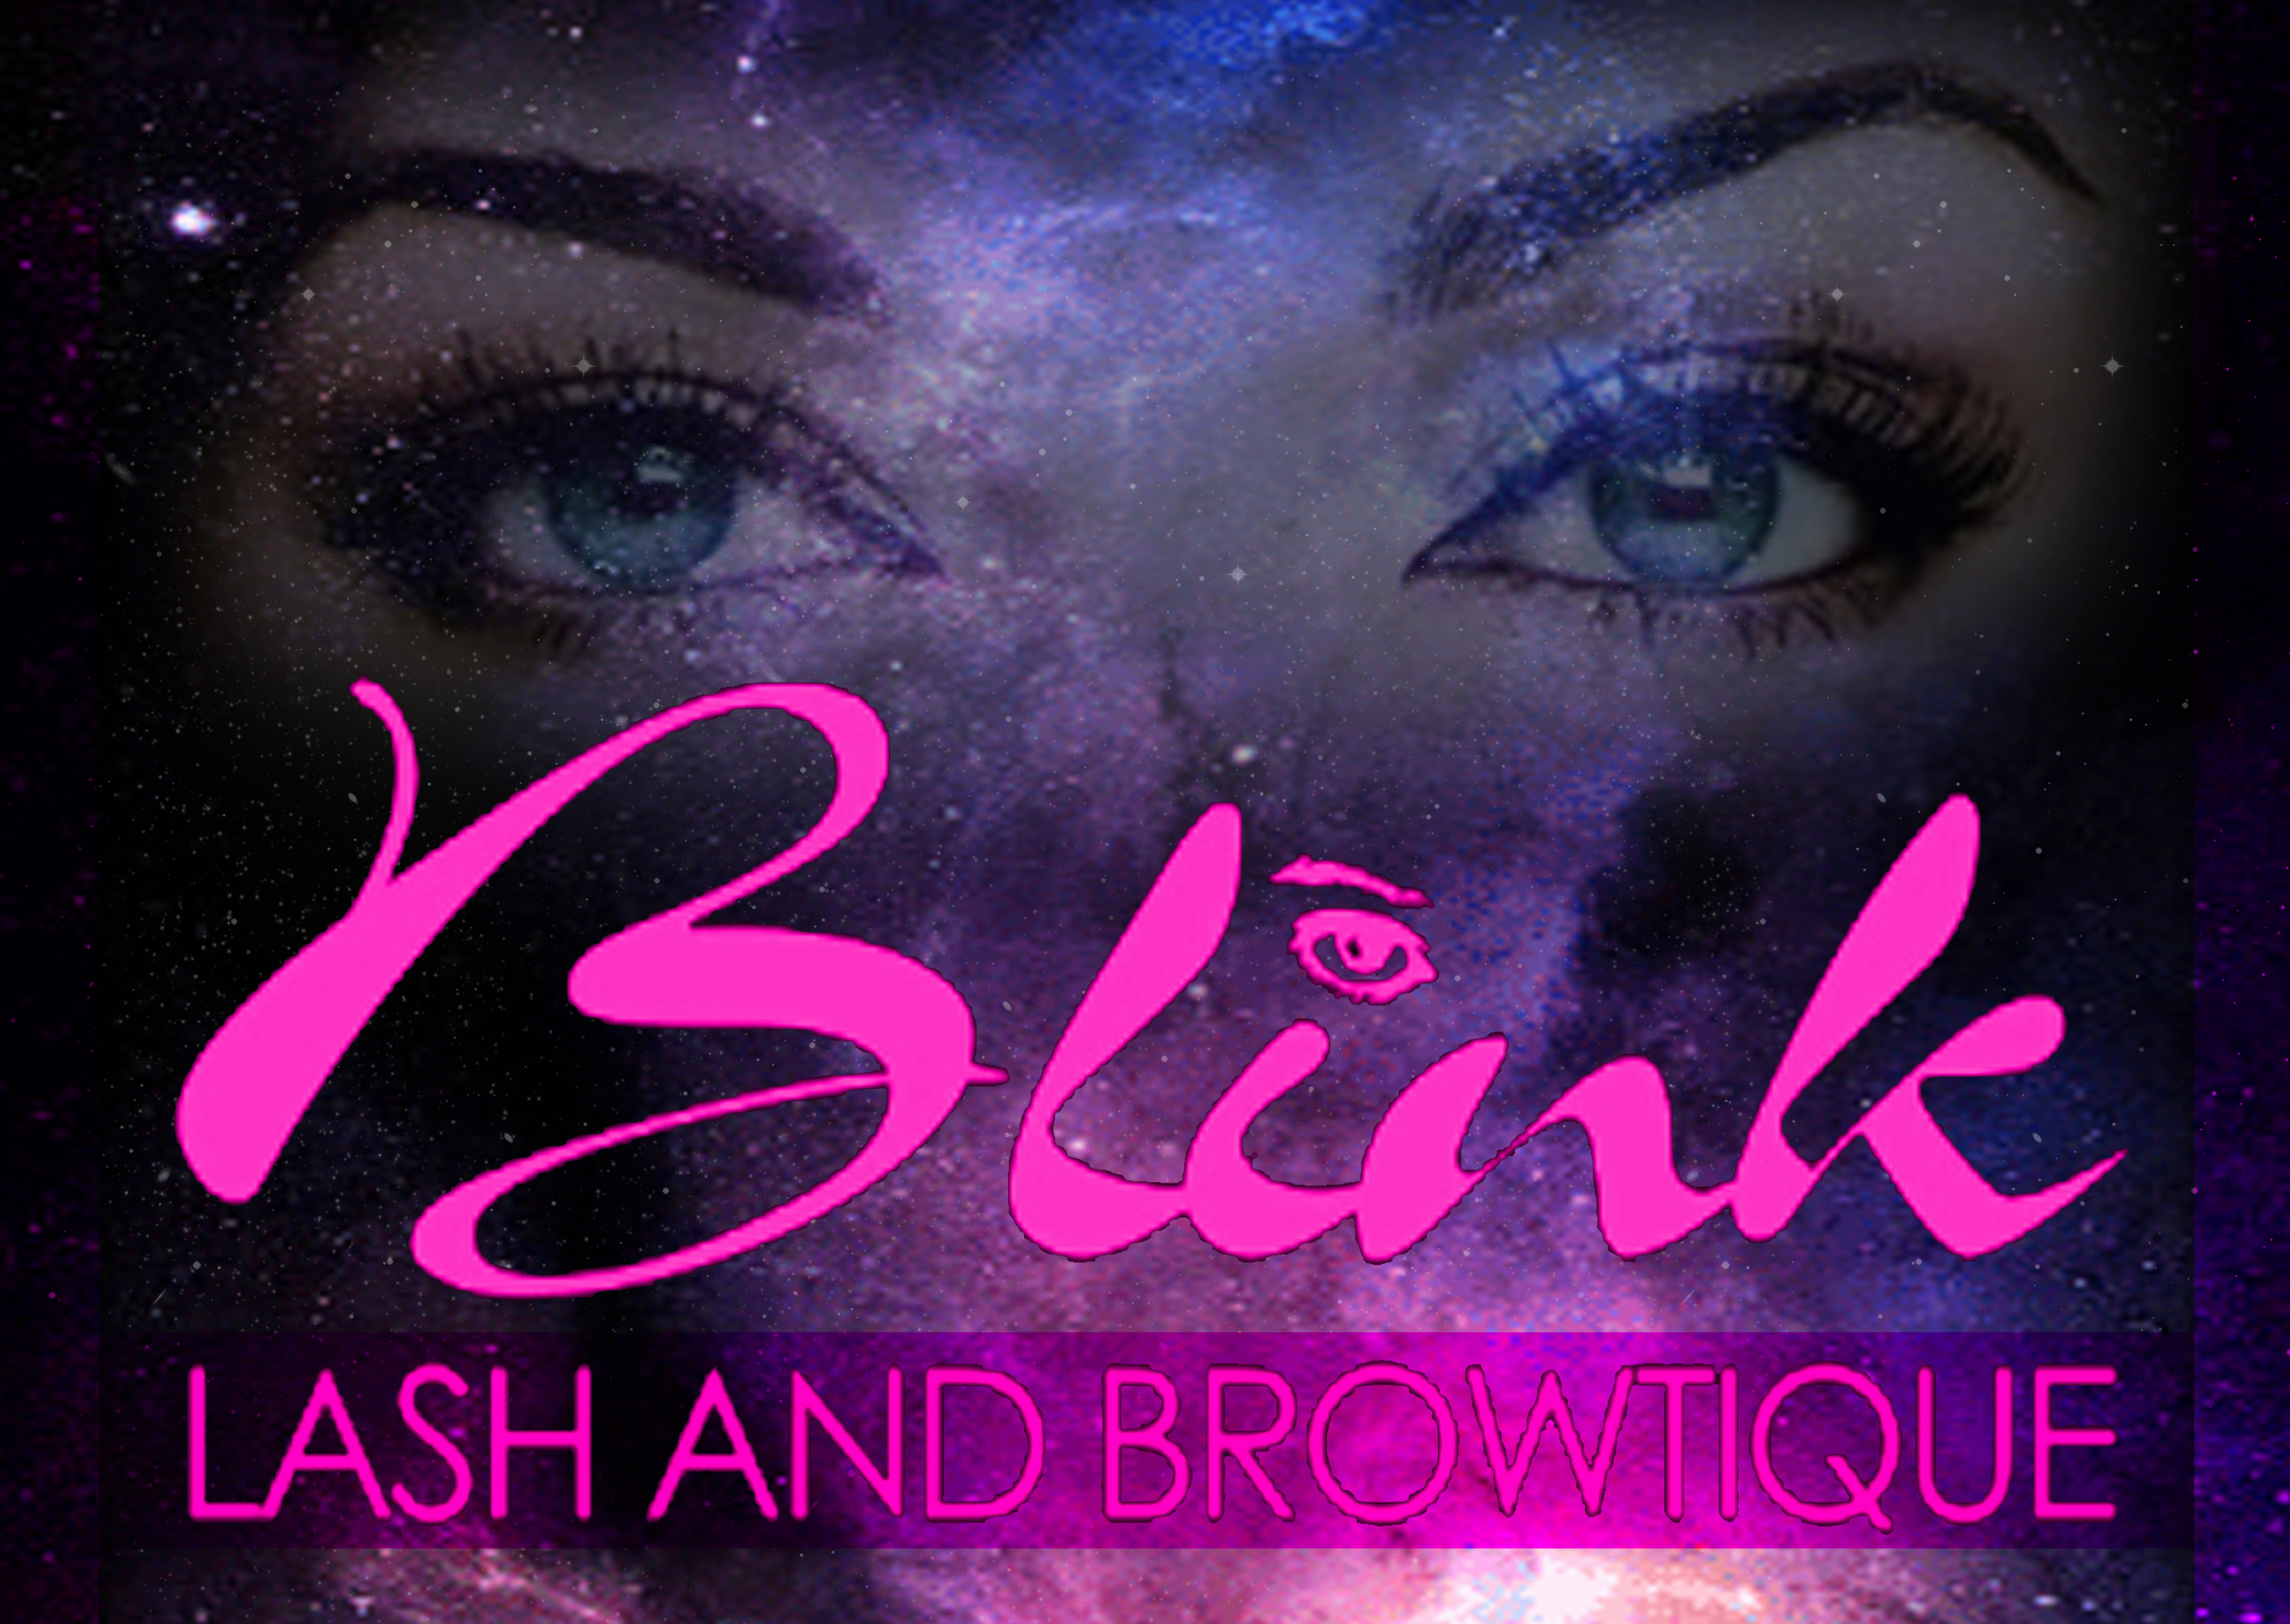 Blink Lash and Browtique